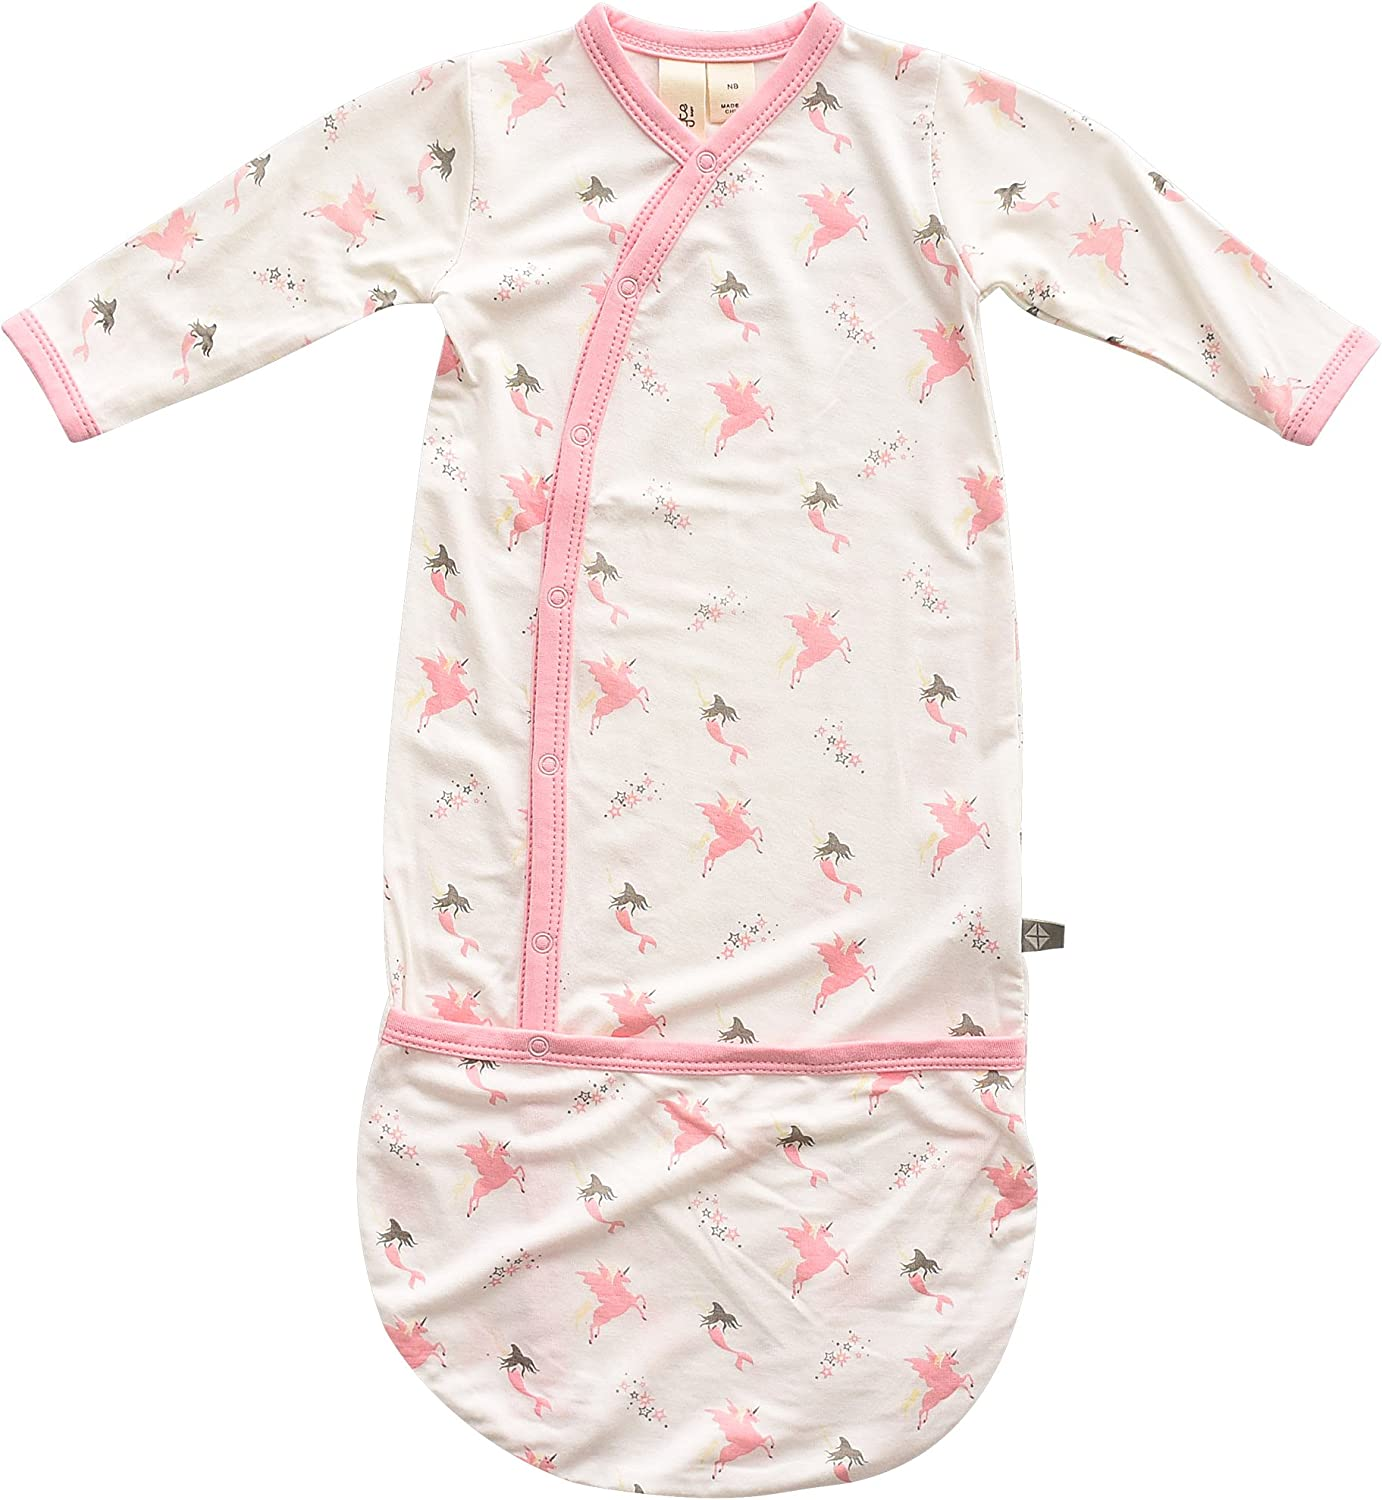 KYTE BABY Bundlers Unisex Baby Sleeper Gowns Made of Soft Bamboo Rayon Material